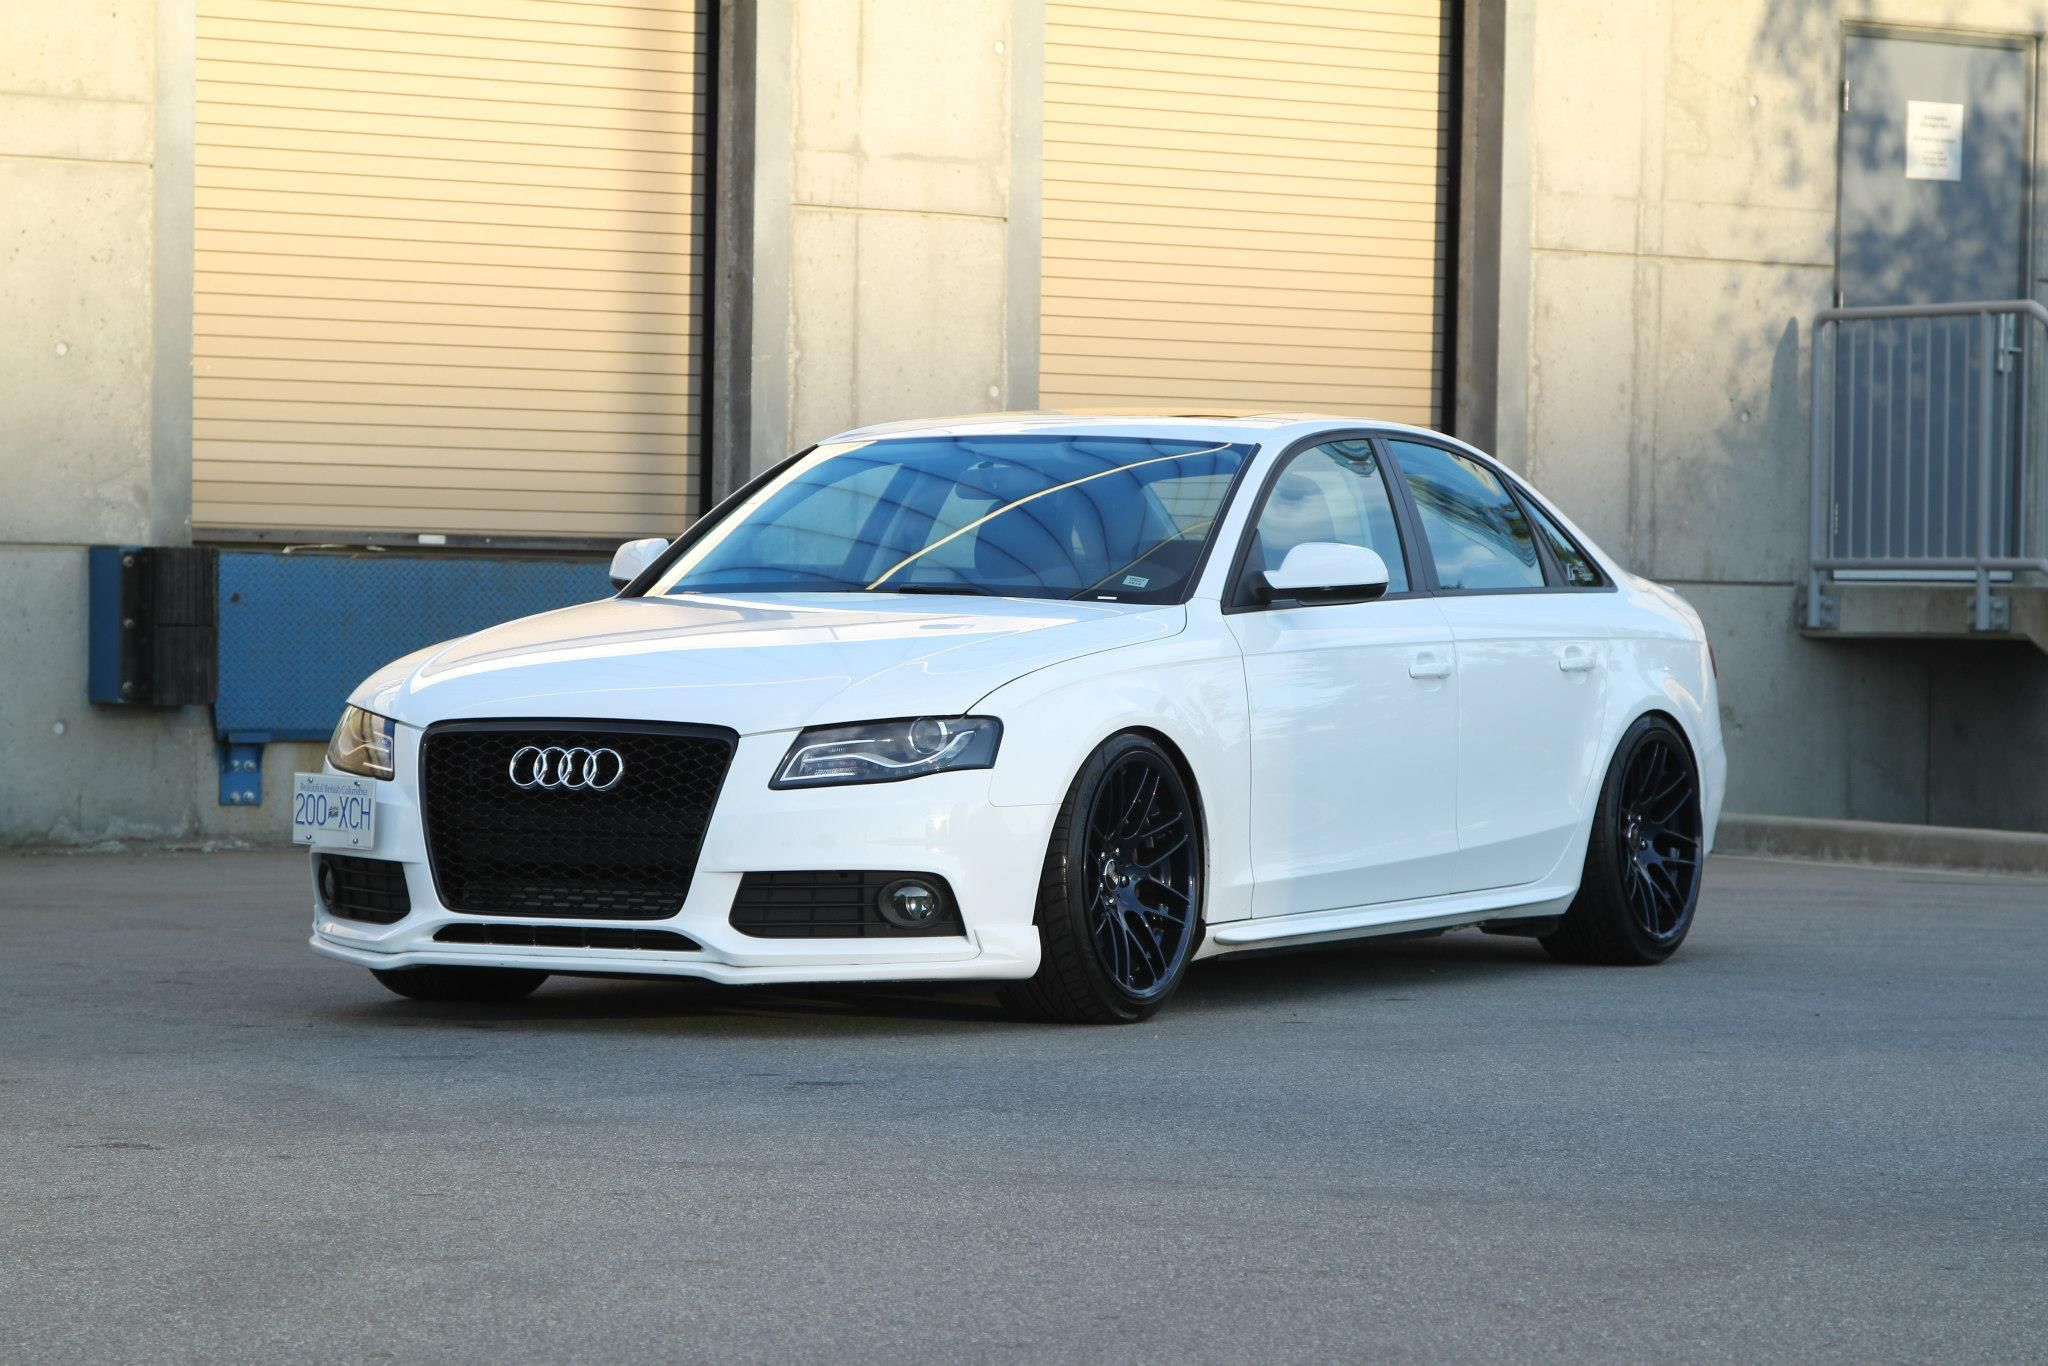 Audi Rs7 2011 >> audi a4 2013 white black rims - Google Search | cars | Pinterest